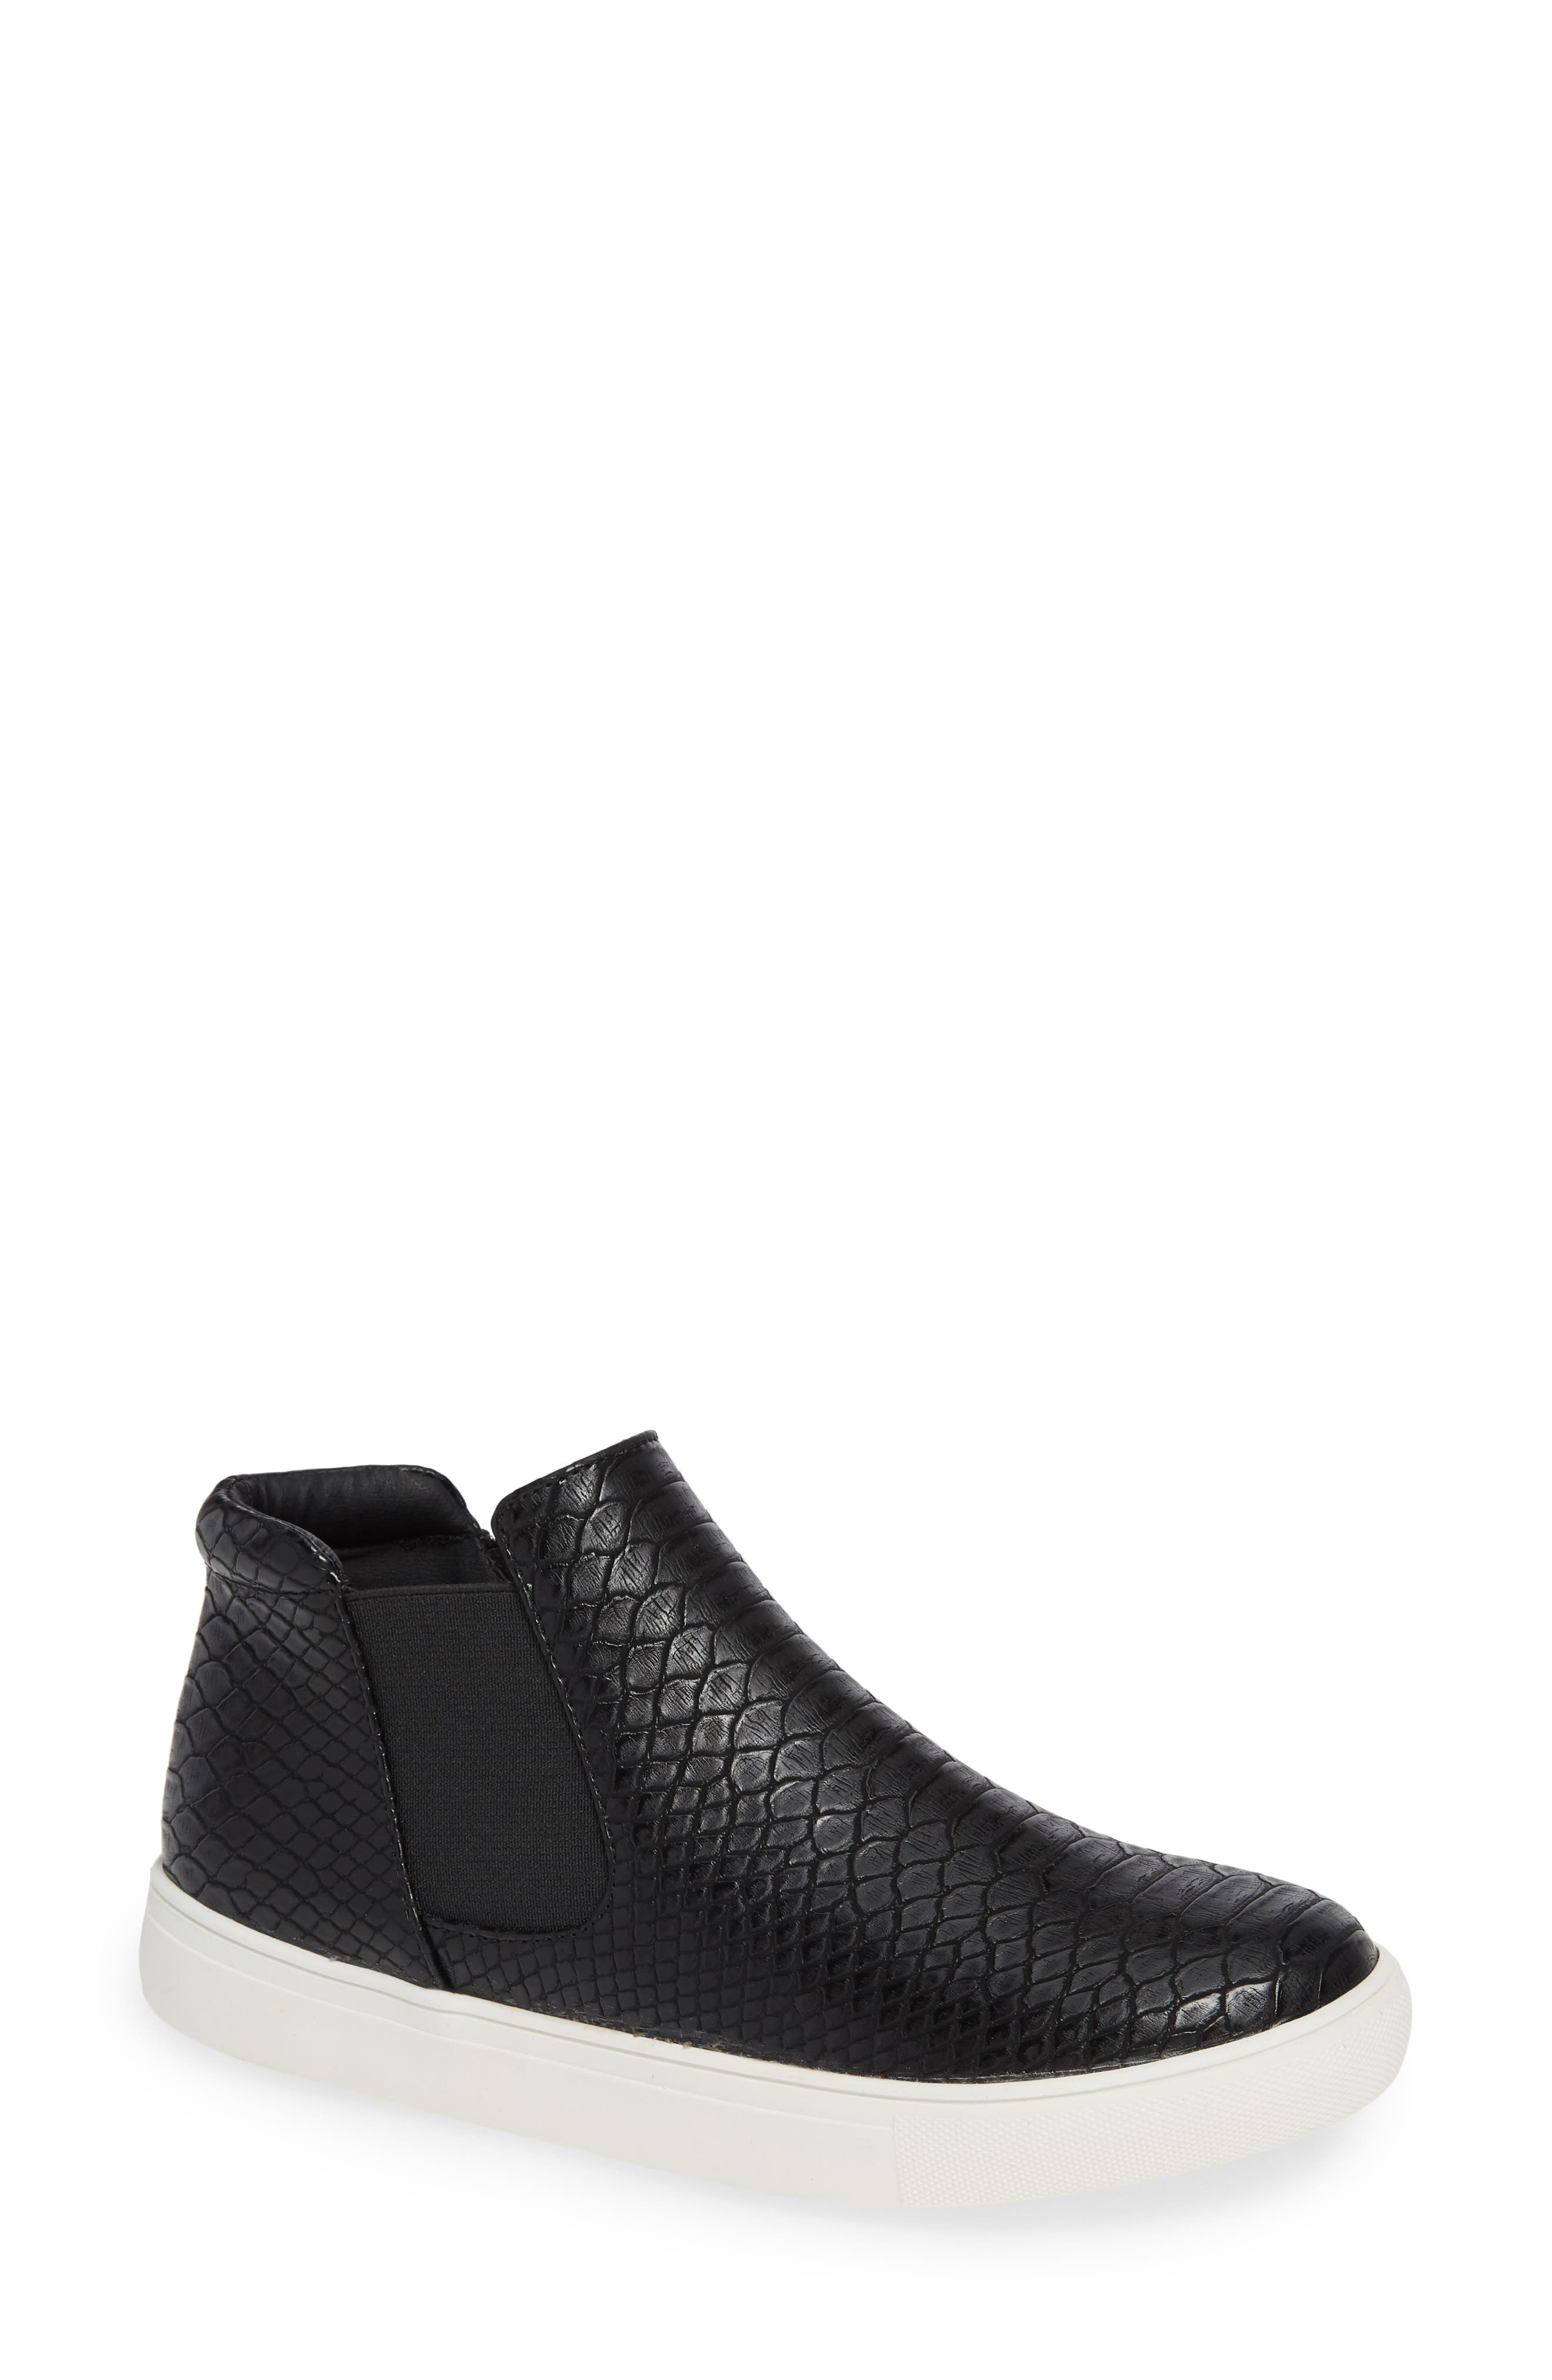 Harlan Slip-On Sneaker,                         Main,                         color, BLACK SNAKE PRINT